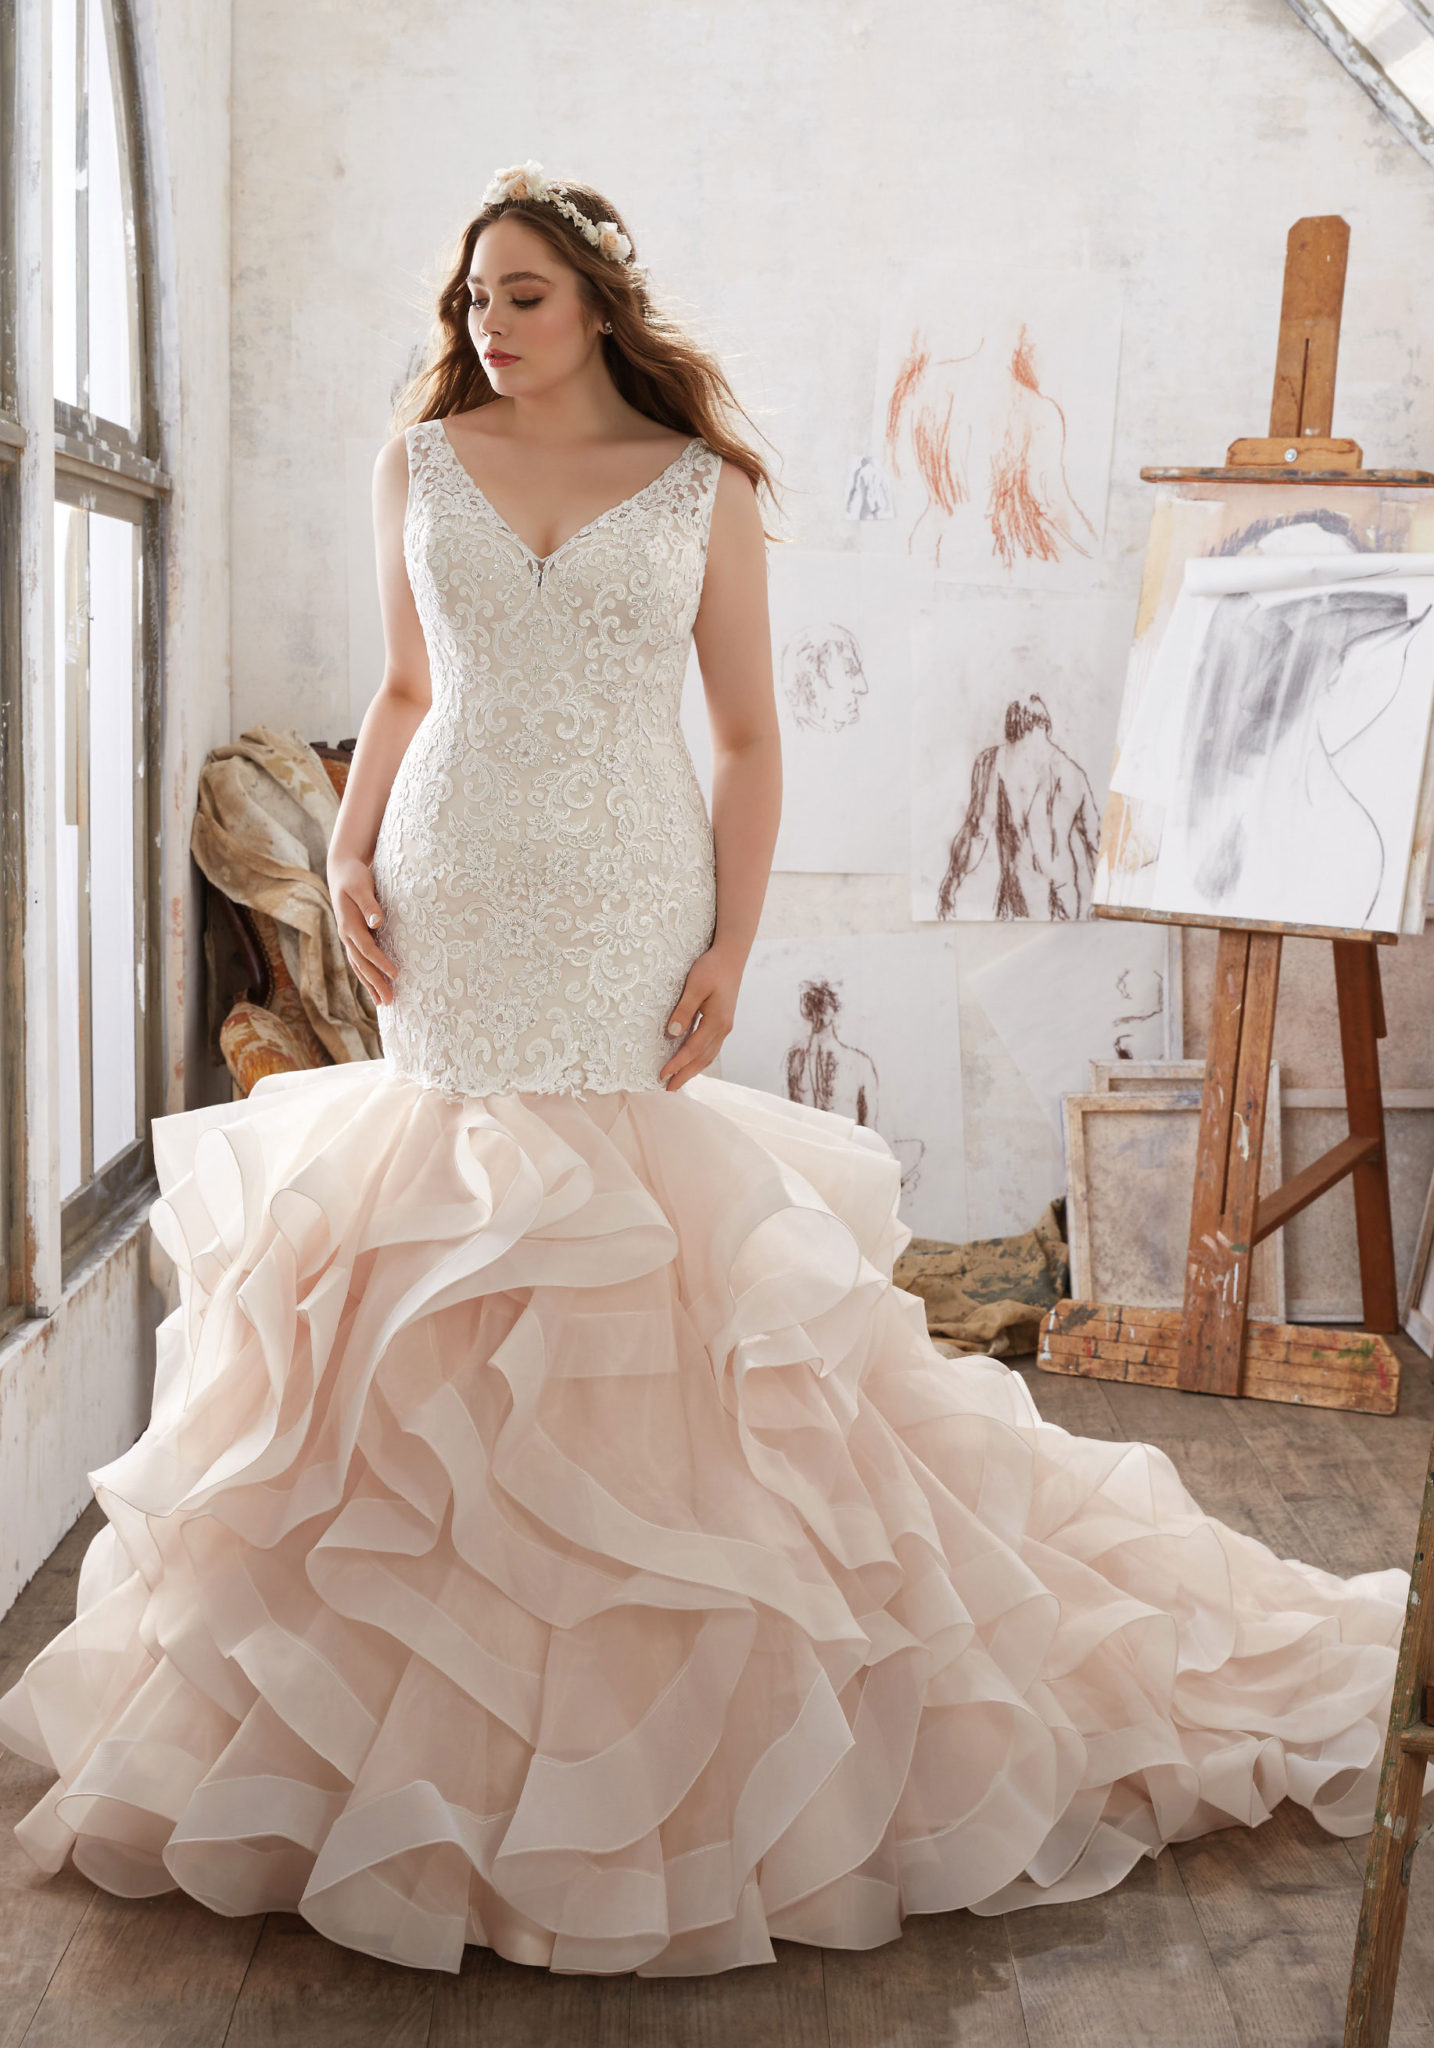 PLUS SIZE DRESS OF THE WEEK | Mildred Wedding Dress | Mori Lee - Julietta Collection | Pretty Pear Bride